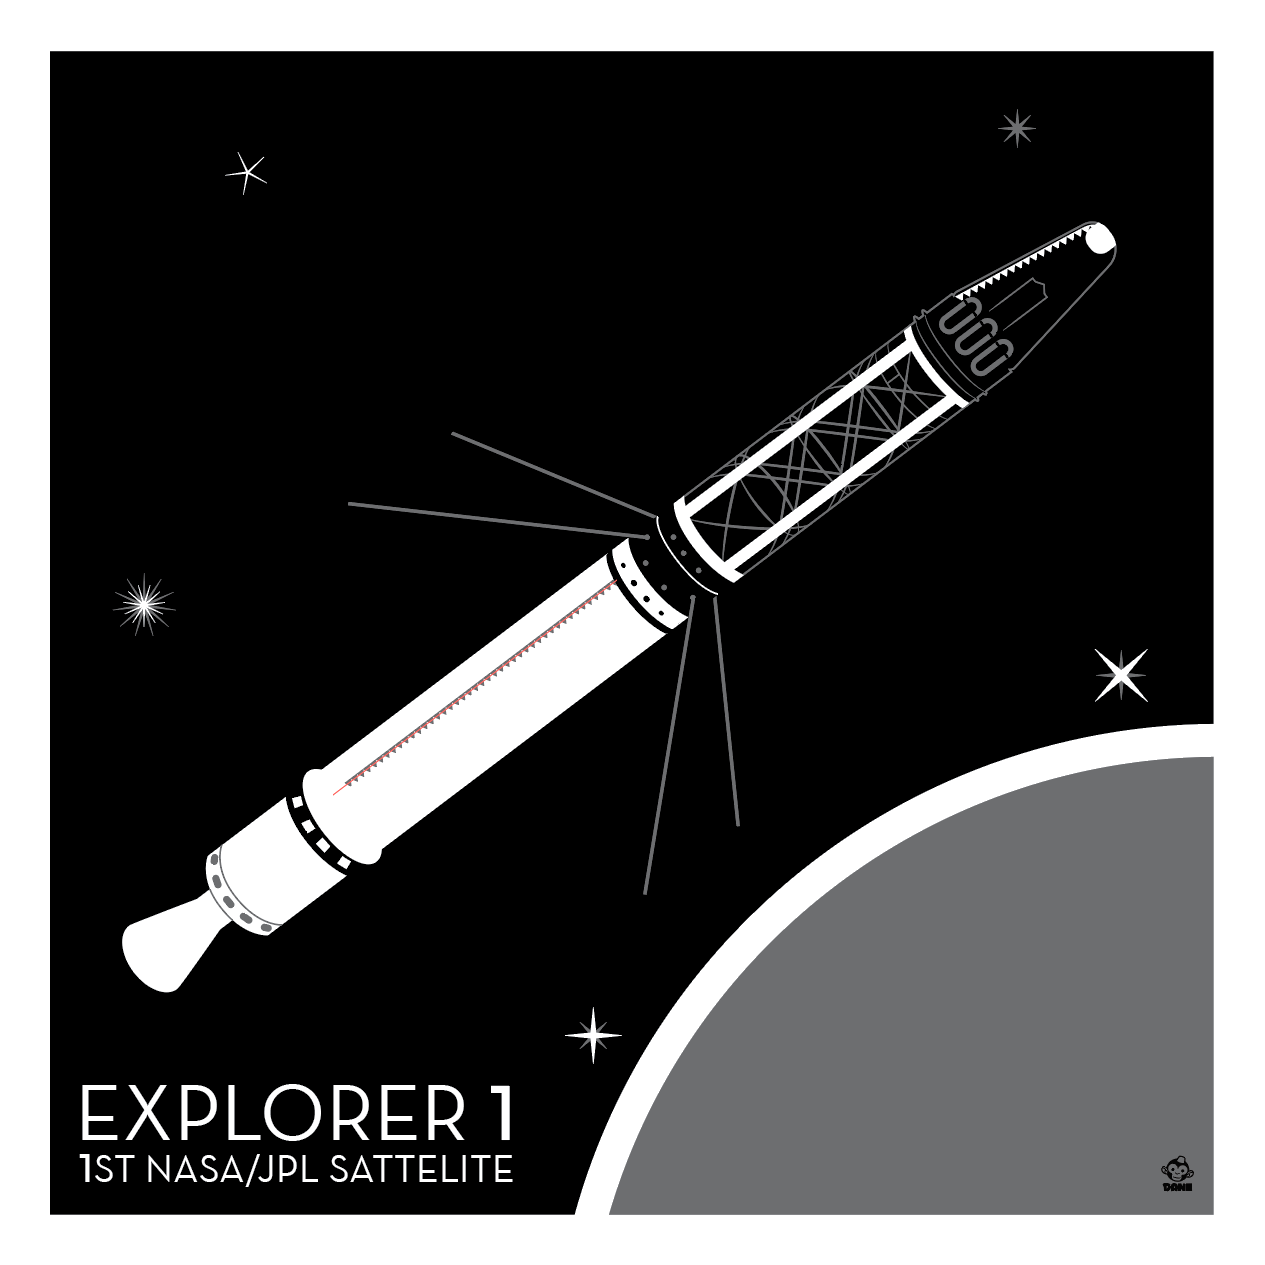 Explorer 1 Satellite - 10x10 Giclee Print